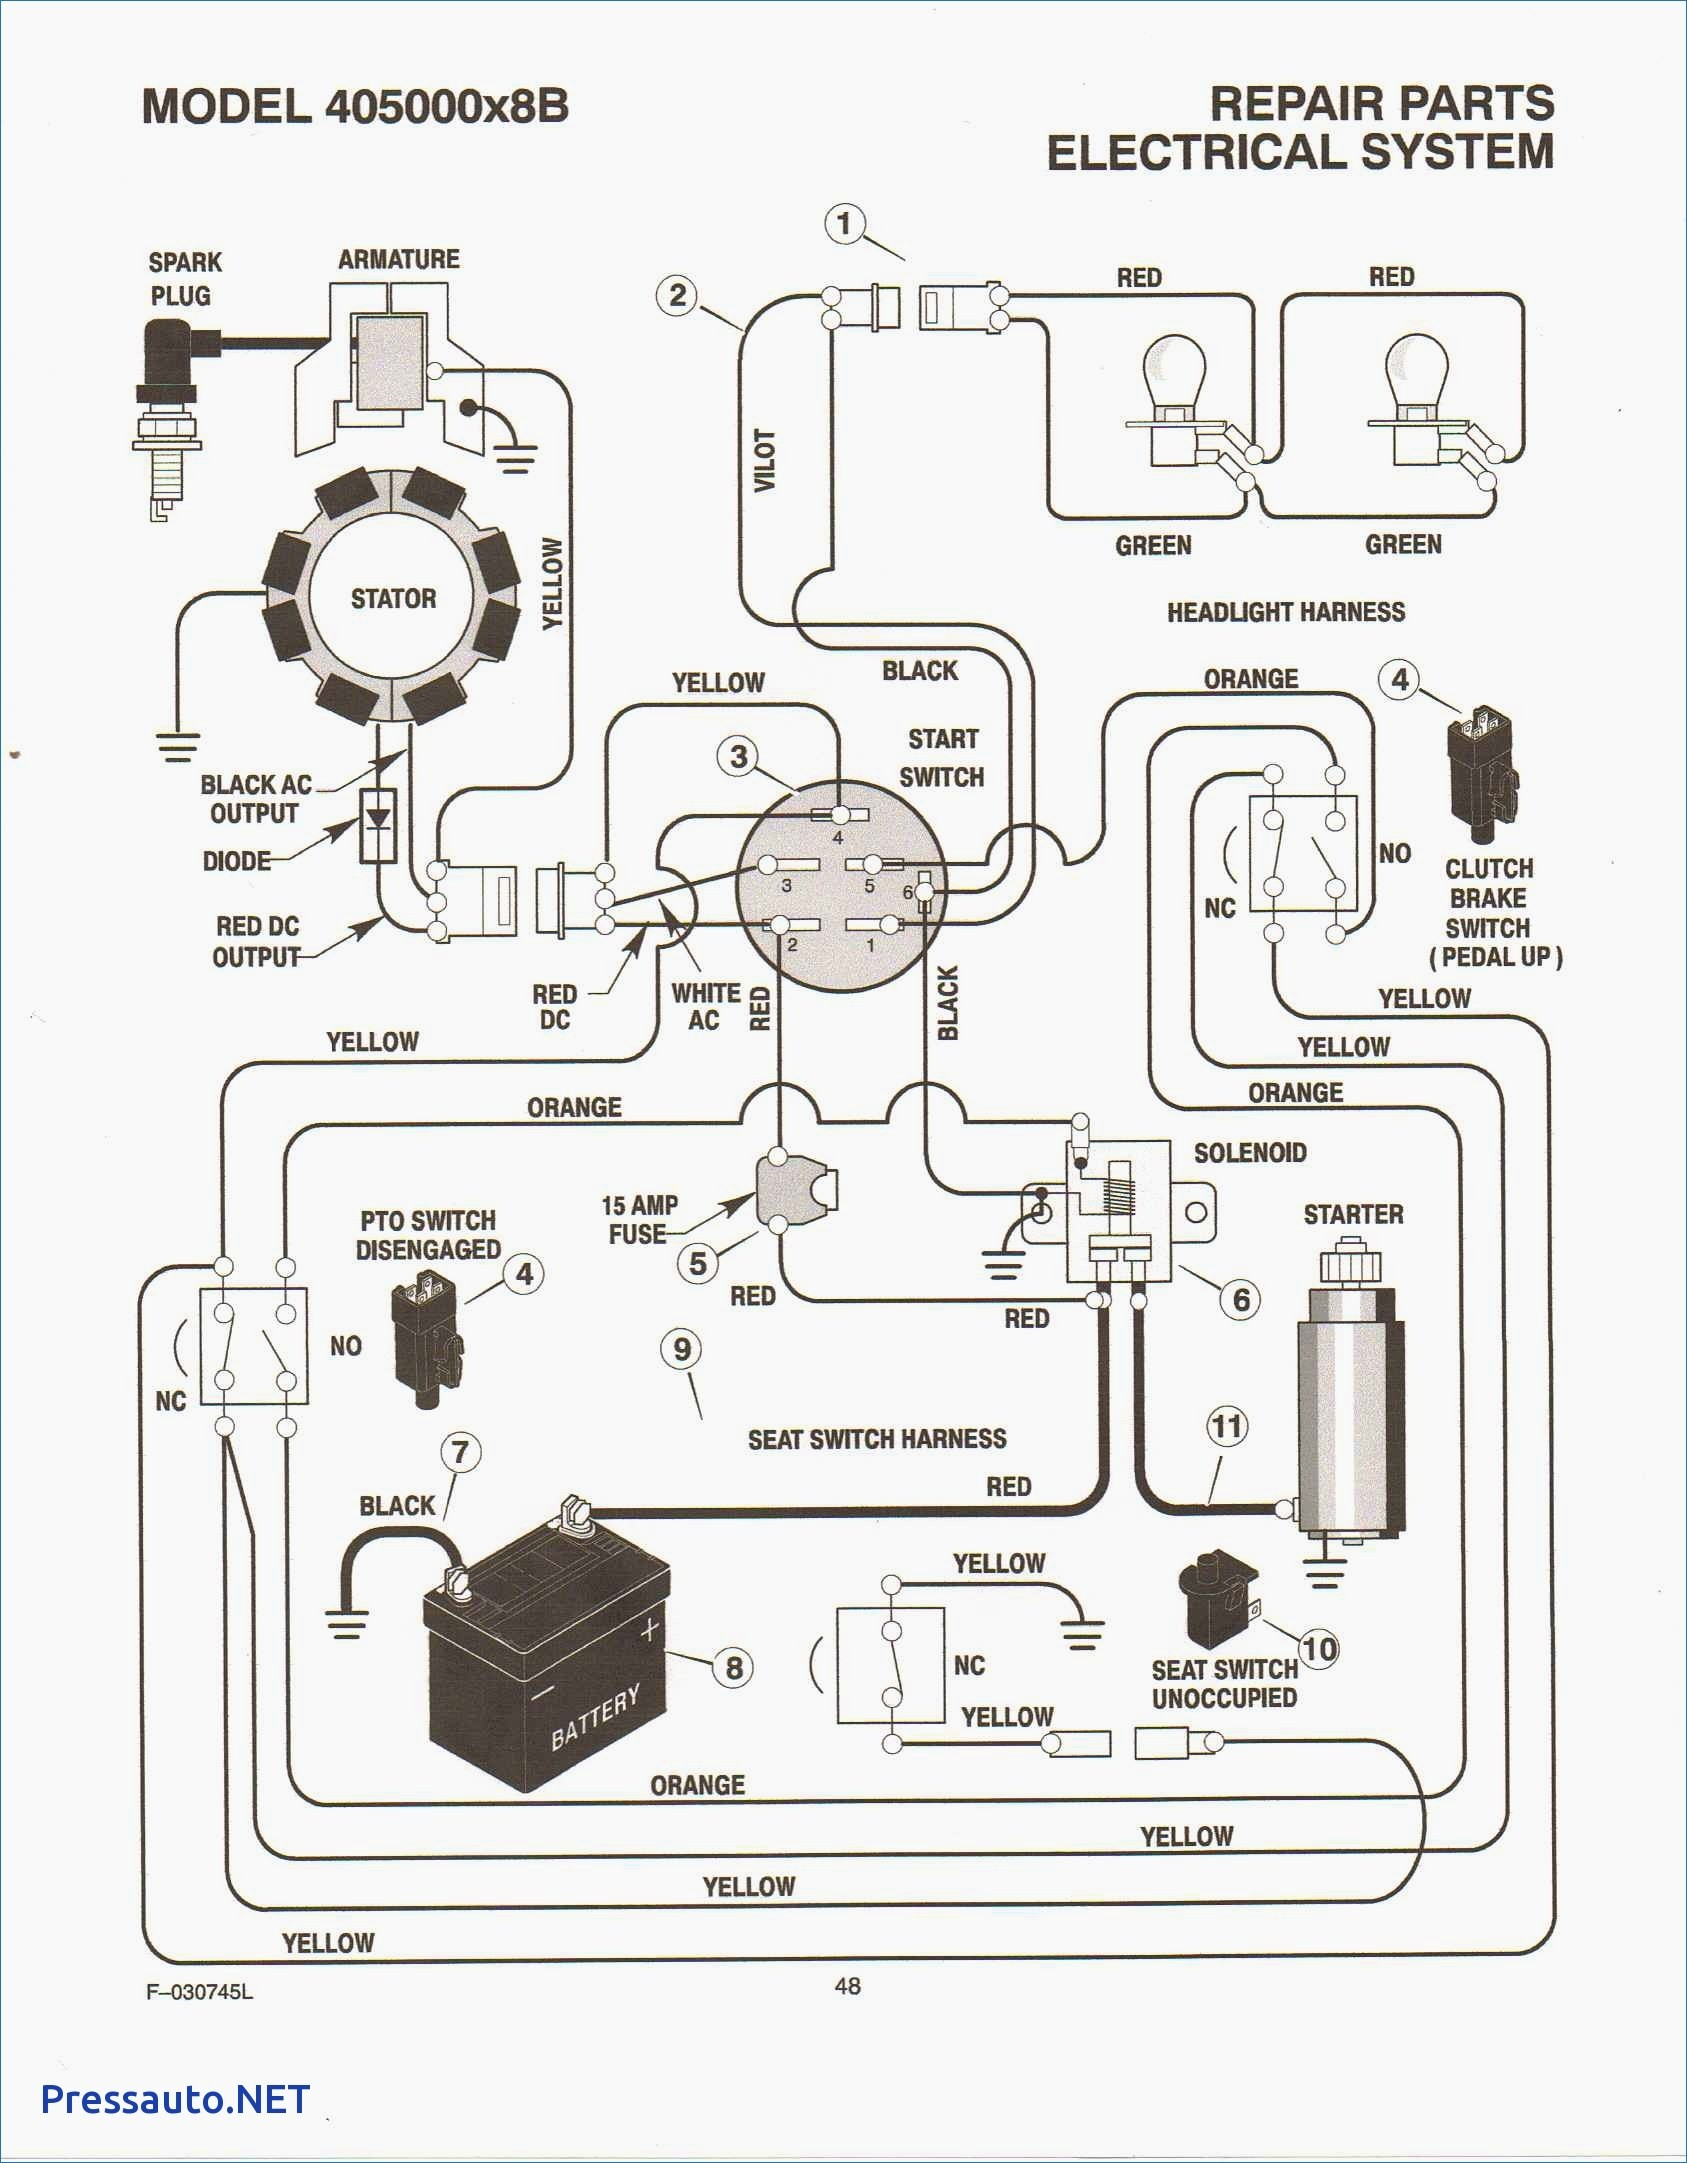 25 hp kohler engine wiring harness diagram wiring diagrams name CH25S Kohler Engine Wiring Diagram